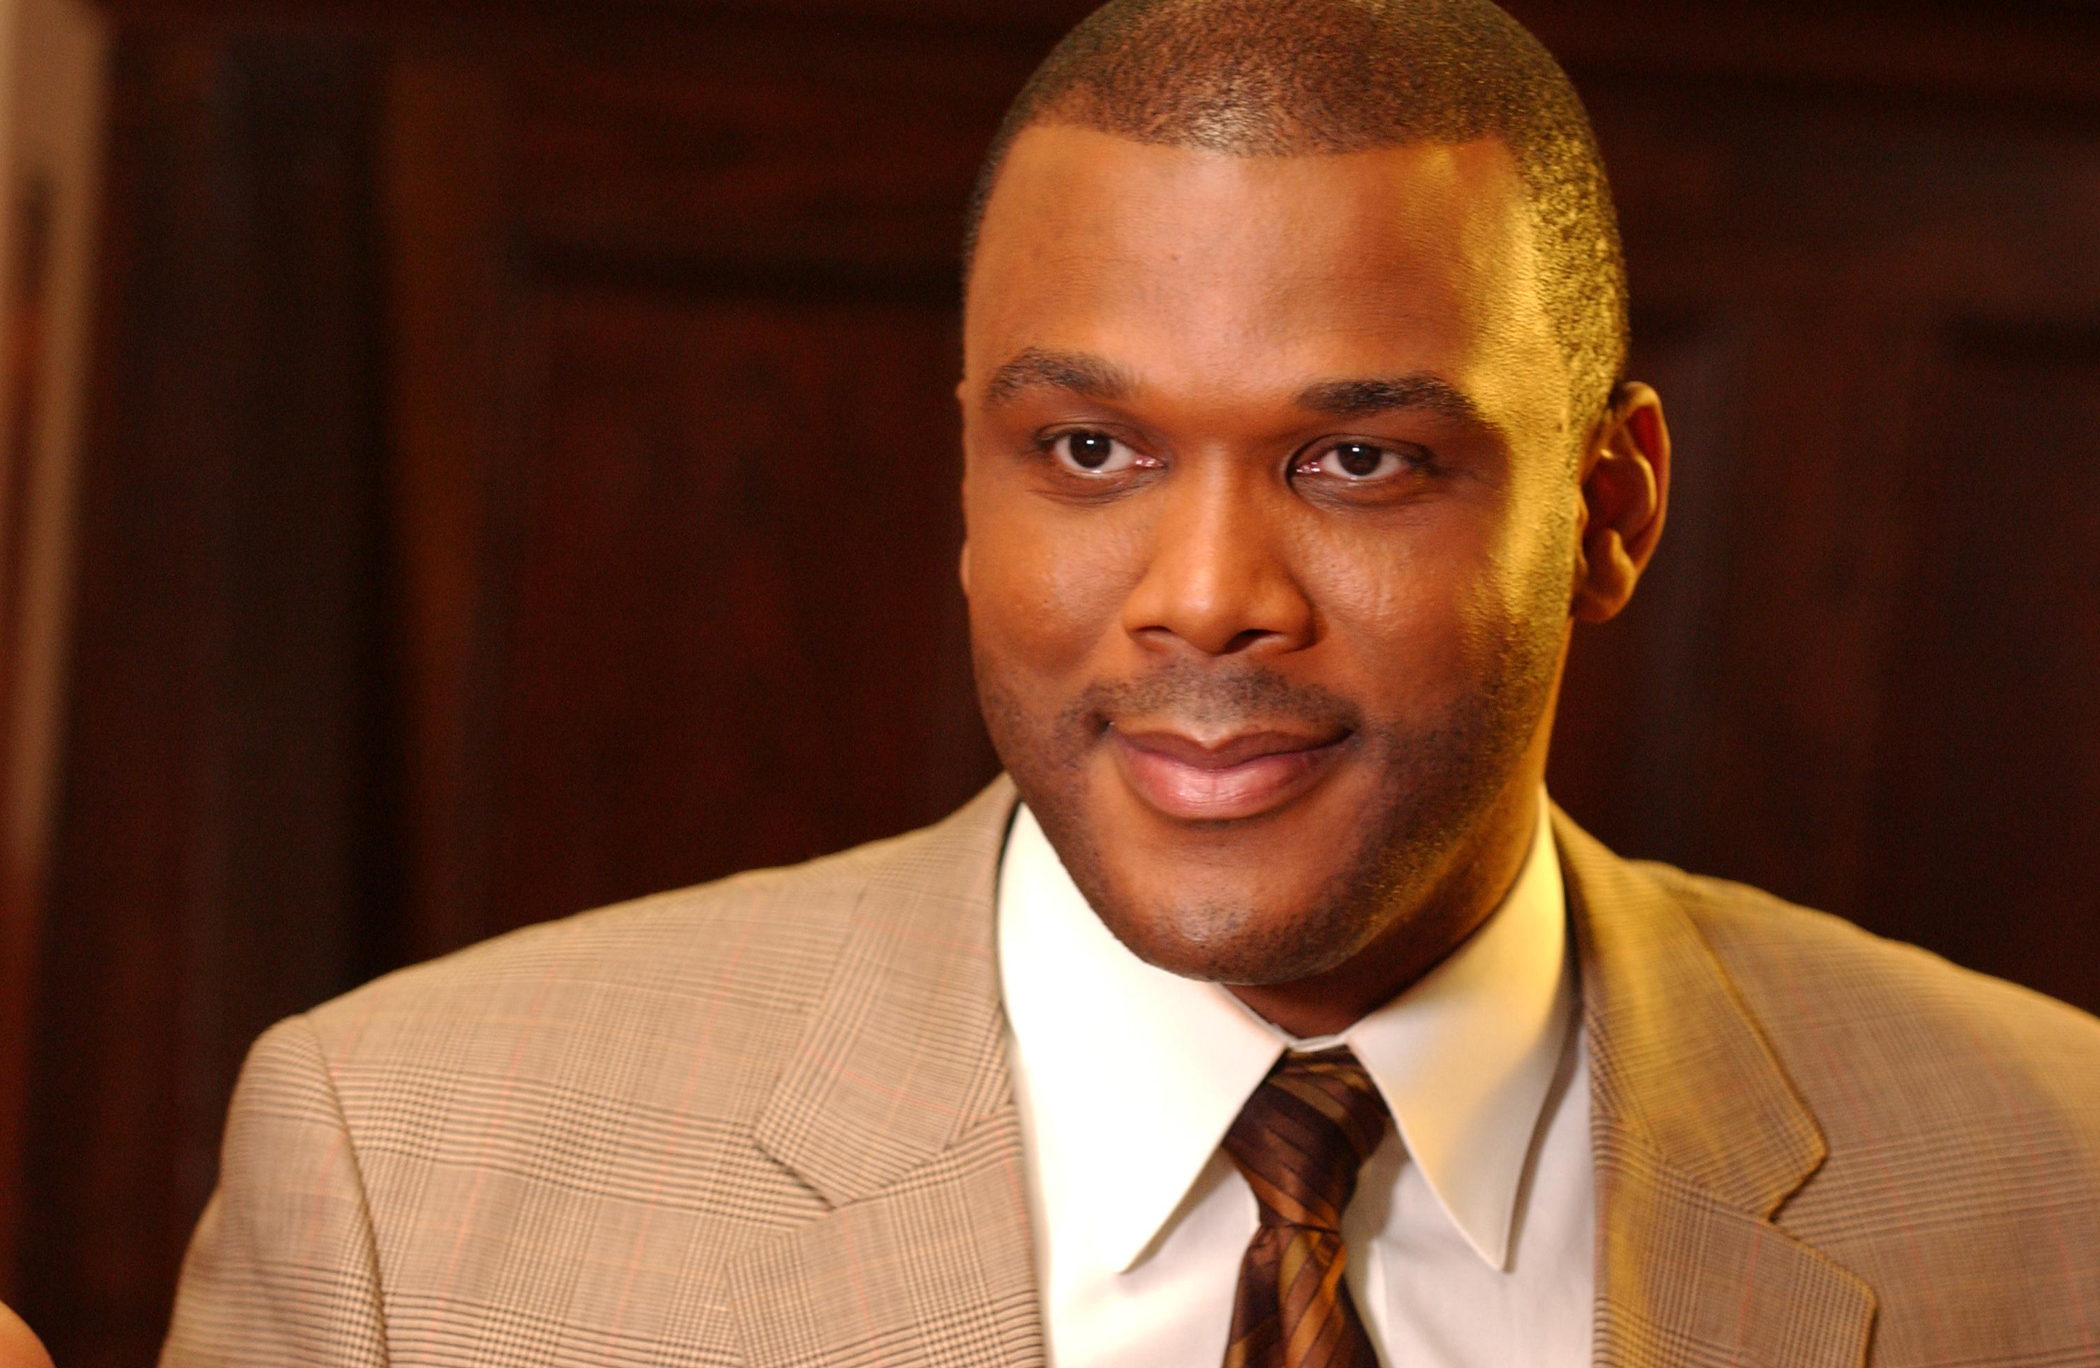 Tyler Perry to play Tanner Bolt In New 20th Century Fox Film